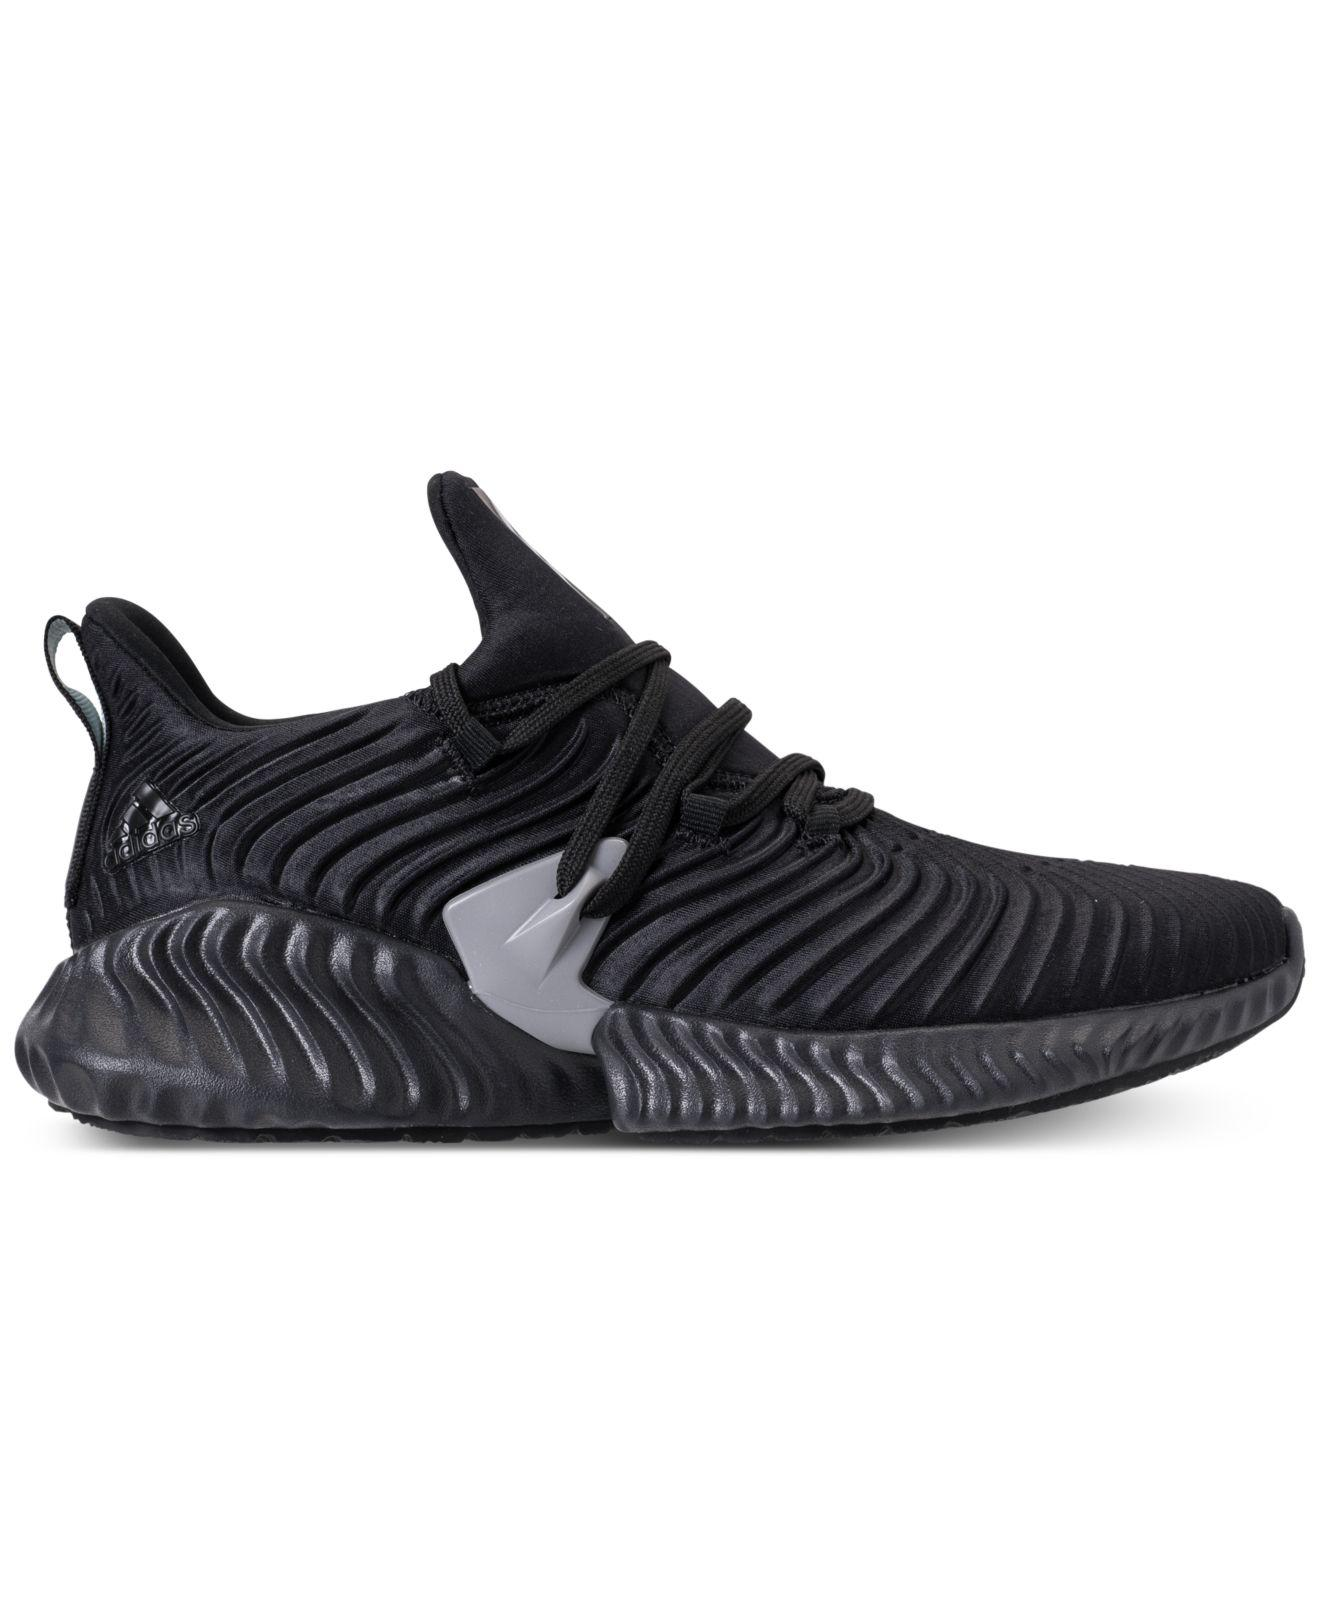 new style 81bb4 39e0f Lyst - adidas Alphabounce Instinct Running Sneakers From Finish Line in  Black - Save 62%